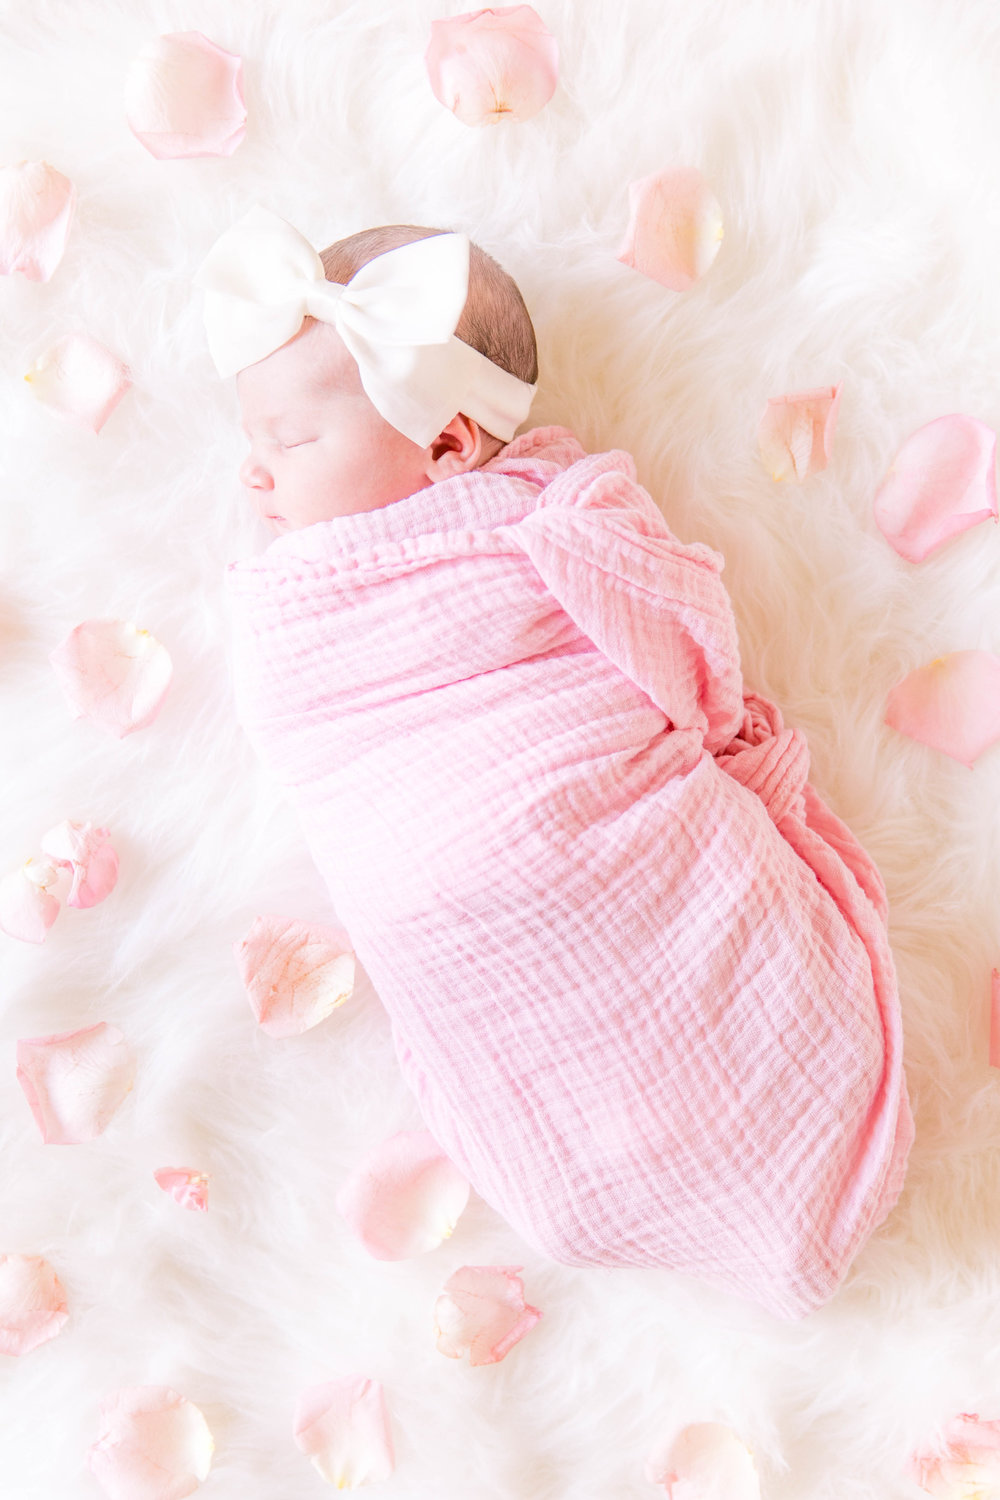 Johnson City newborn photography, Tri Cities photographer, East Tennessee photography, sibling photos, styled newborn session, rose petal photos